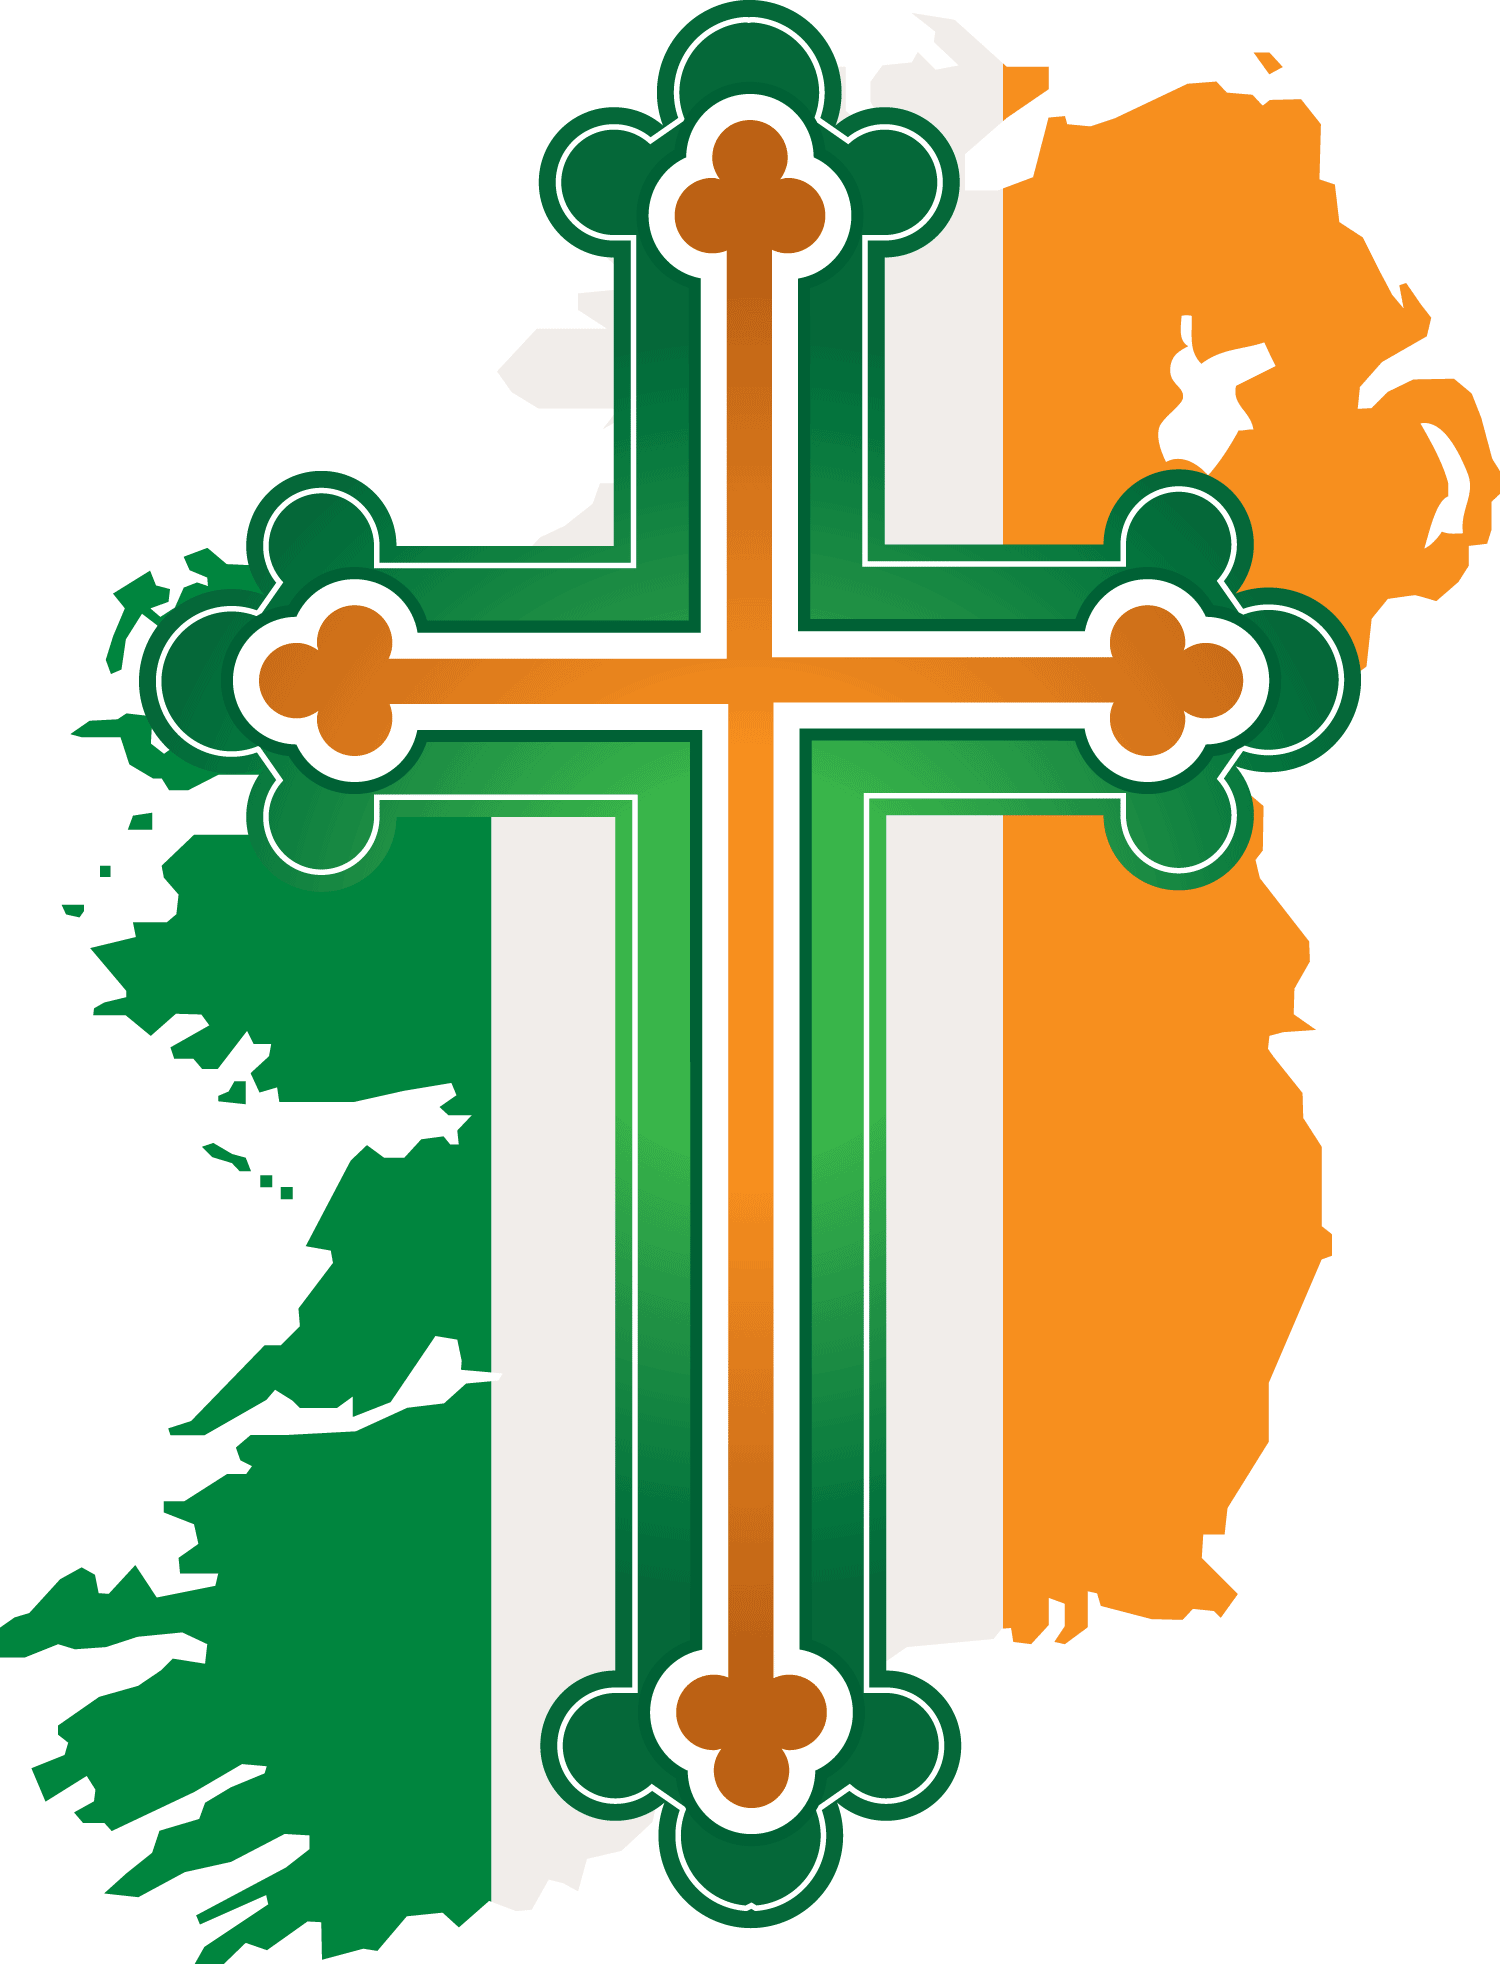 The meaning behind popular St. Patrick's Day symbols. St. Patrick's Day is a holiday that is quite rich in traditional symbolism. Even though many of these symbols are familiar and even celebrated, people may not know the full meaning behind their usage. #StPatricksDay